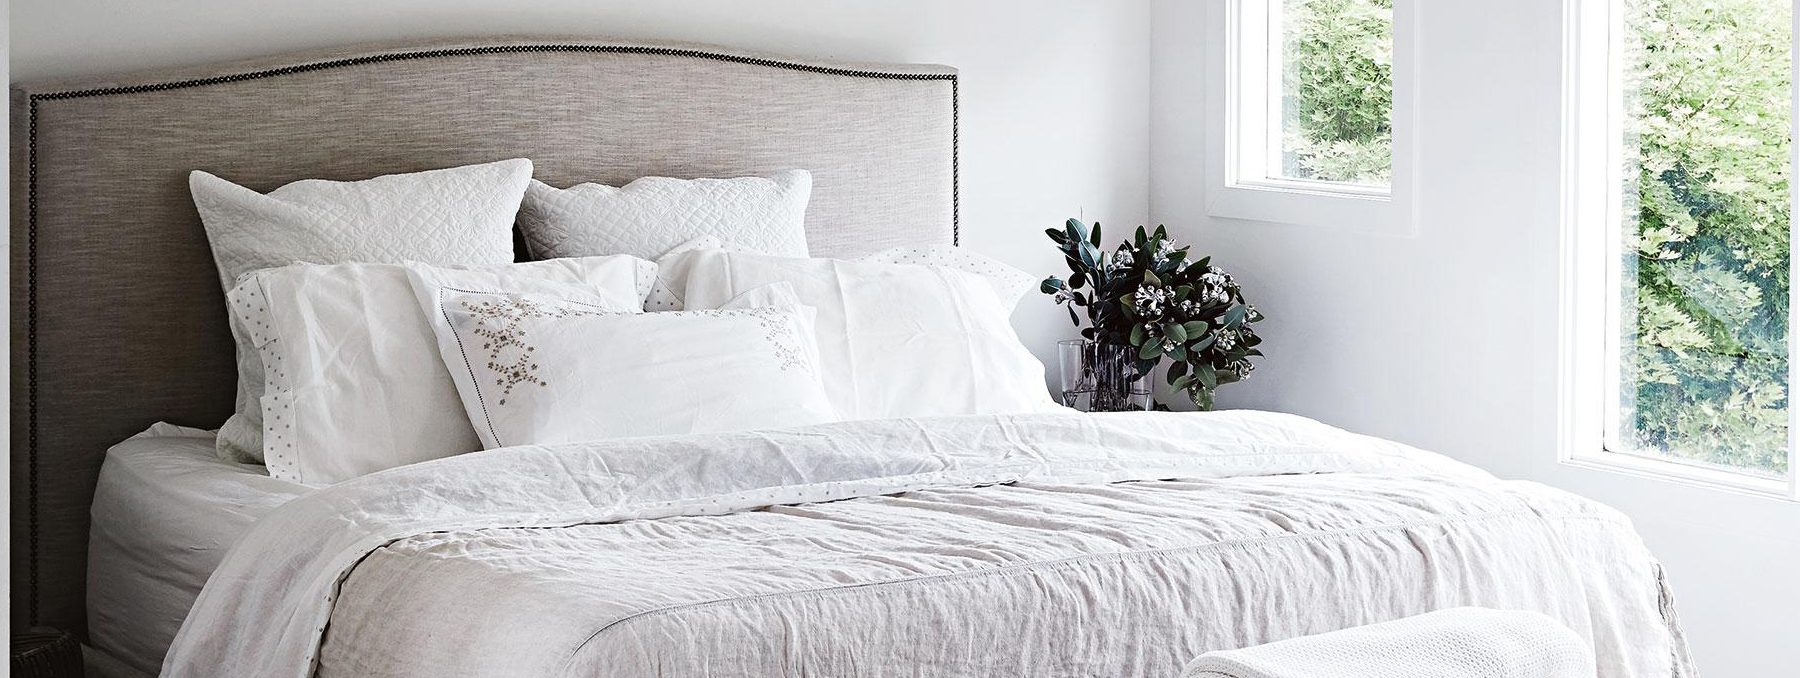 ESSENTIAL INGREDIENTS FOR A DREAMY BEDROOM